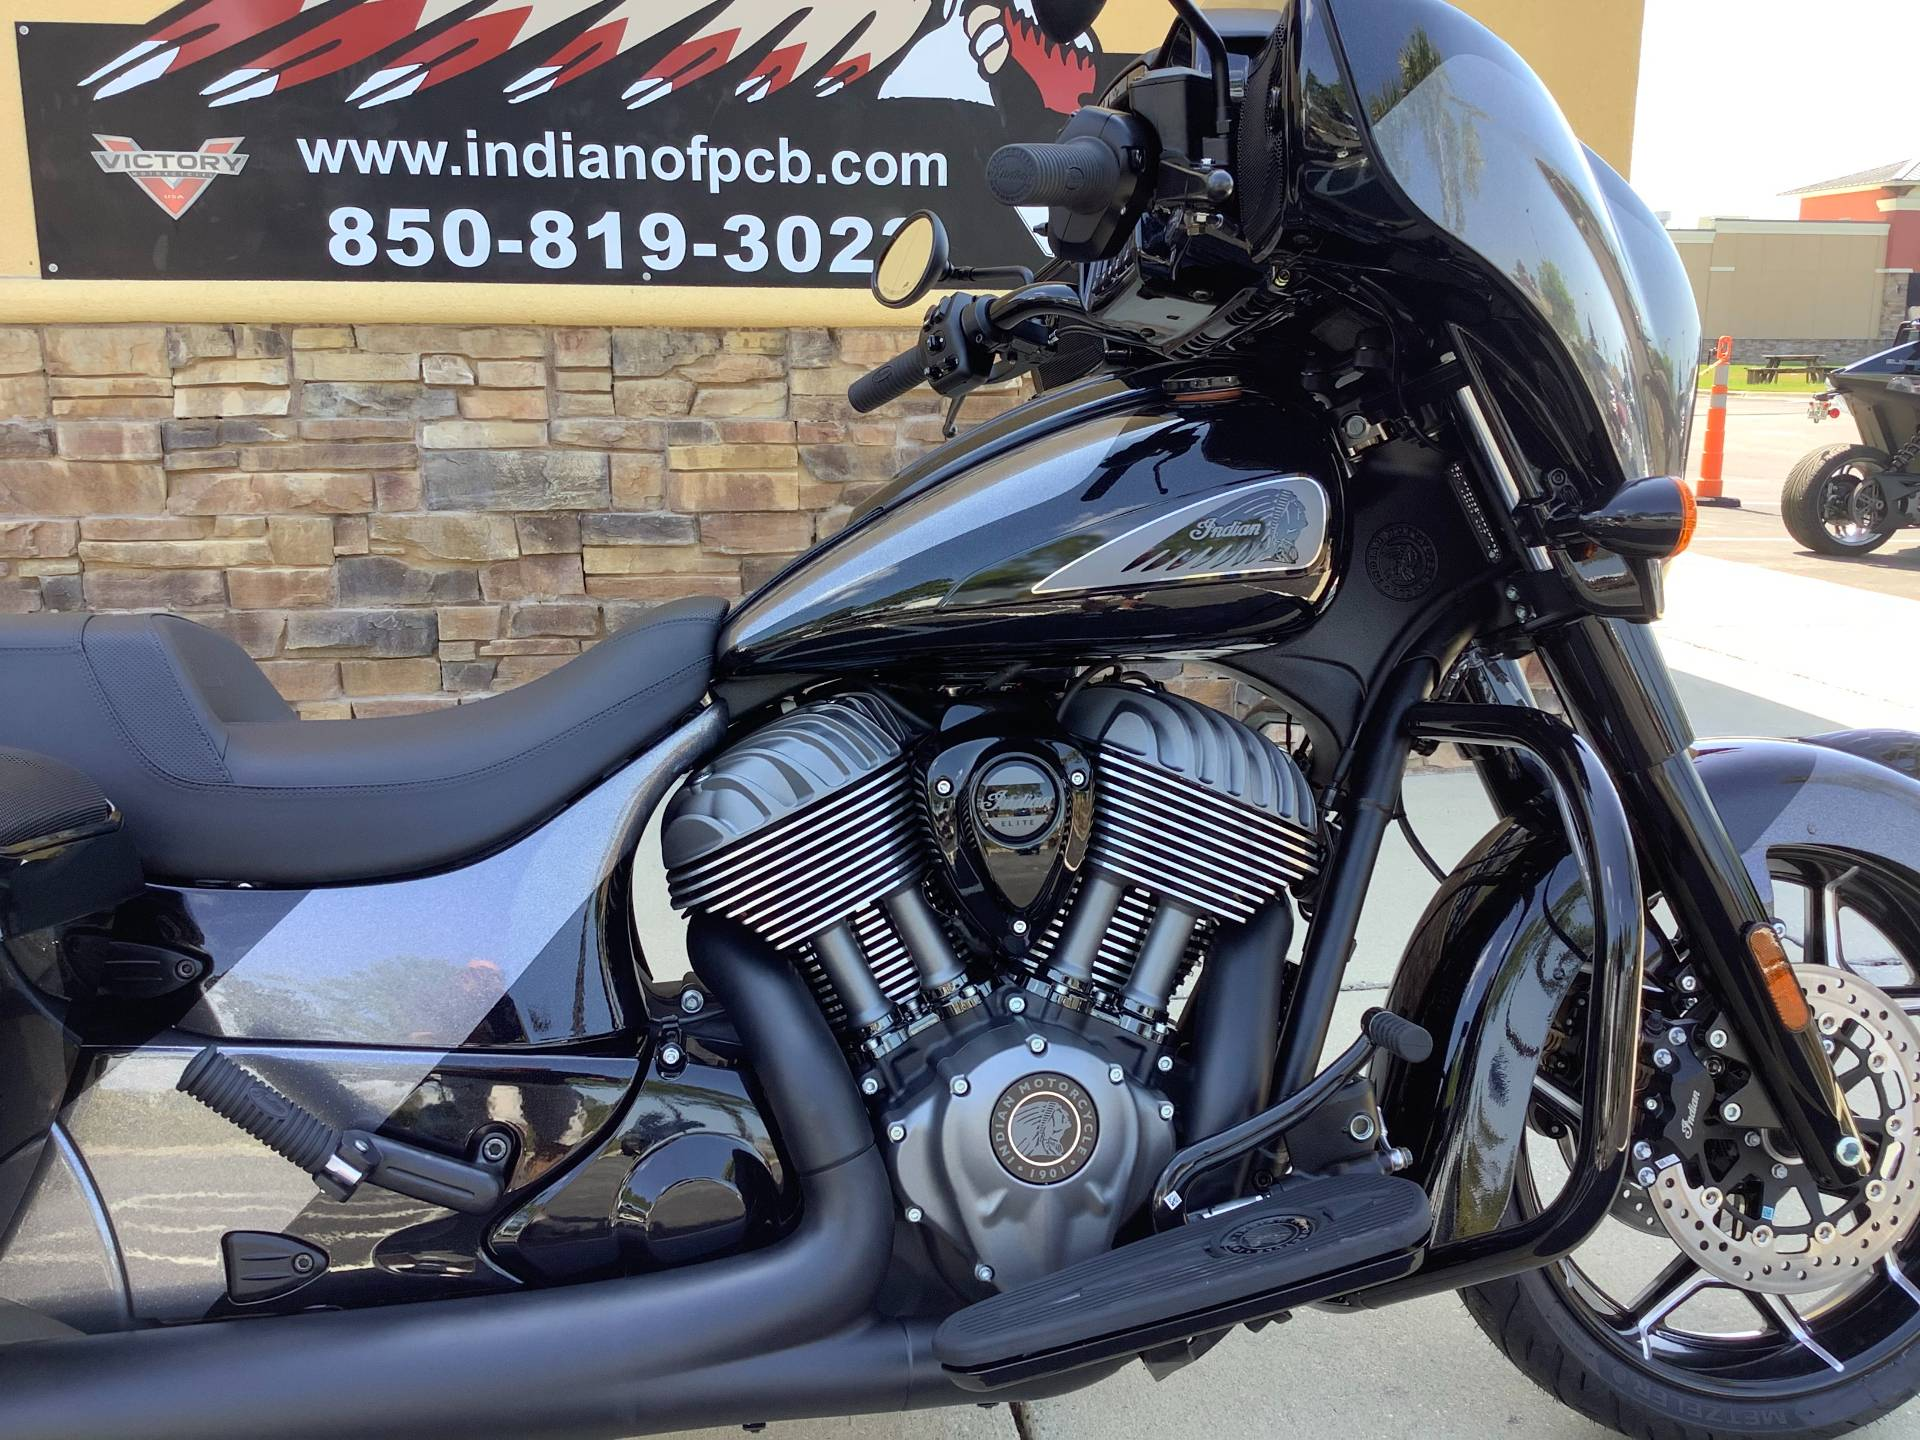 2021 Indian CHIEFTAIN ELITE in Panama City Beach, Florida - Photo 5